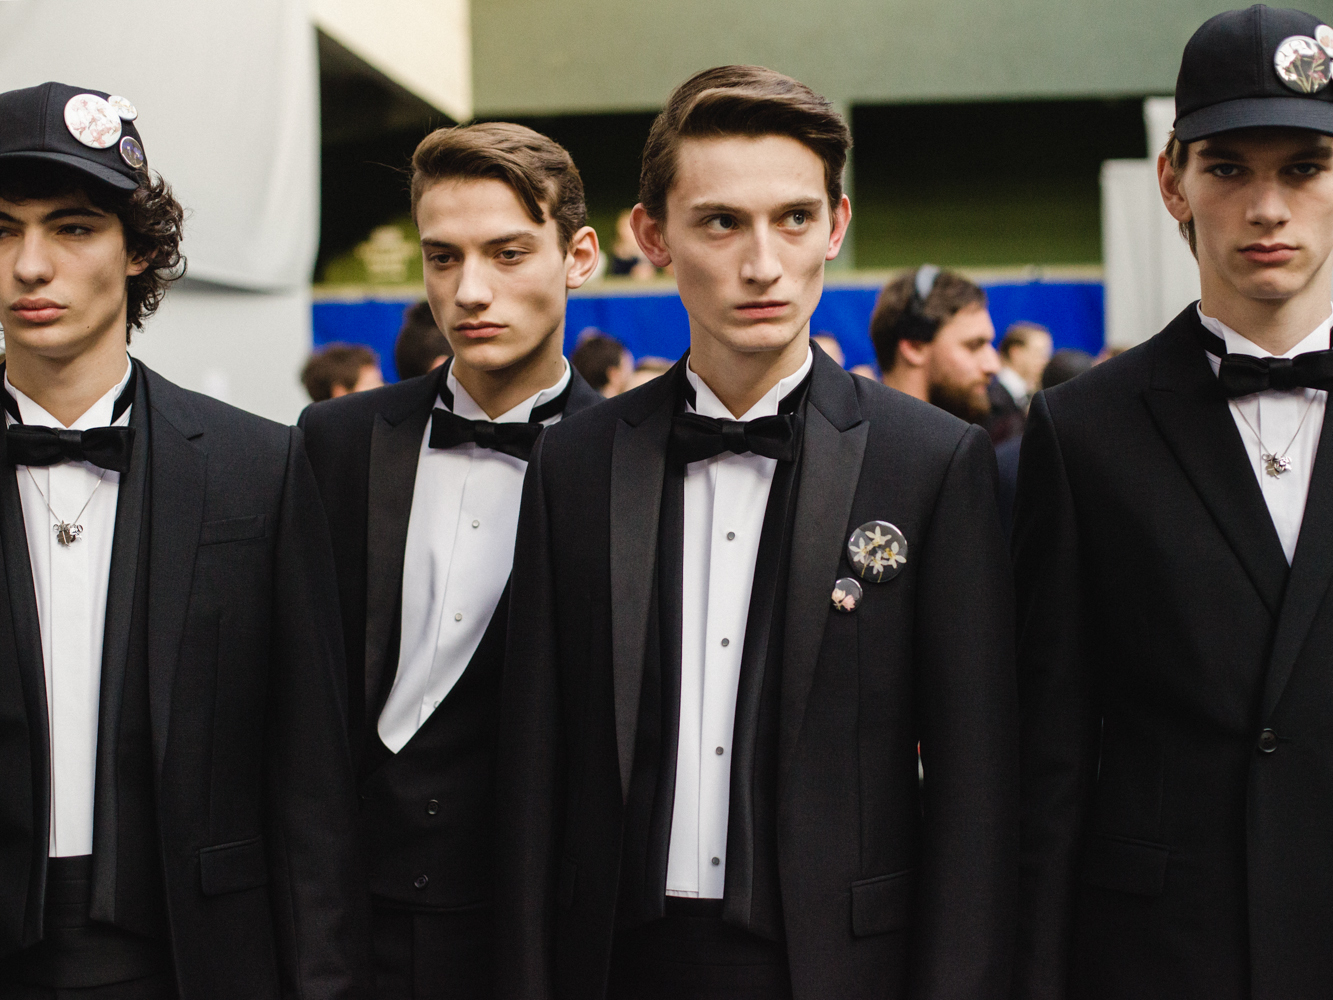 dior homme leads a new theatrical era of men's shows - i-D